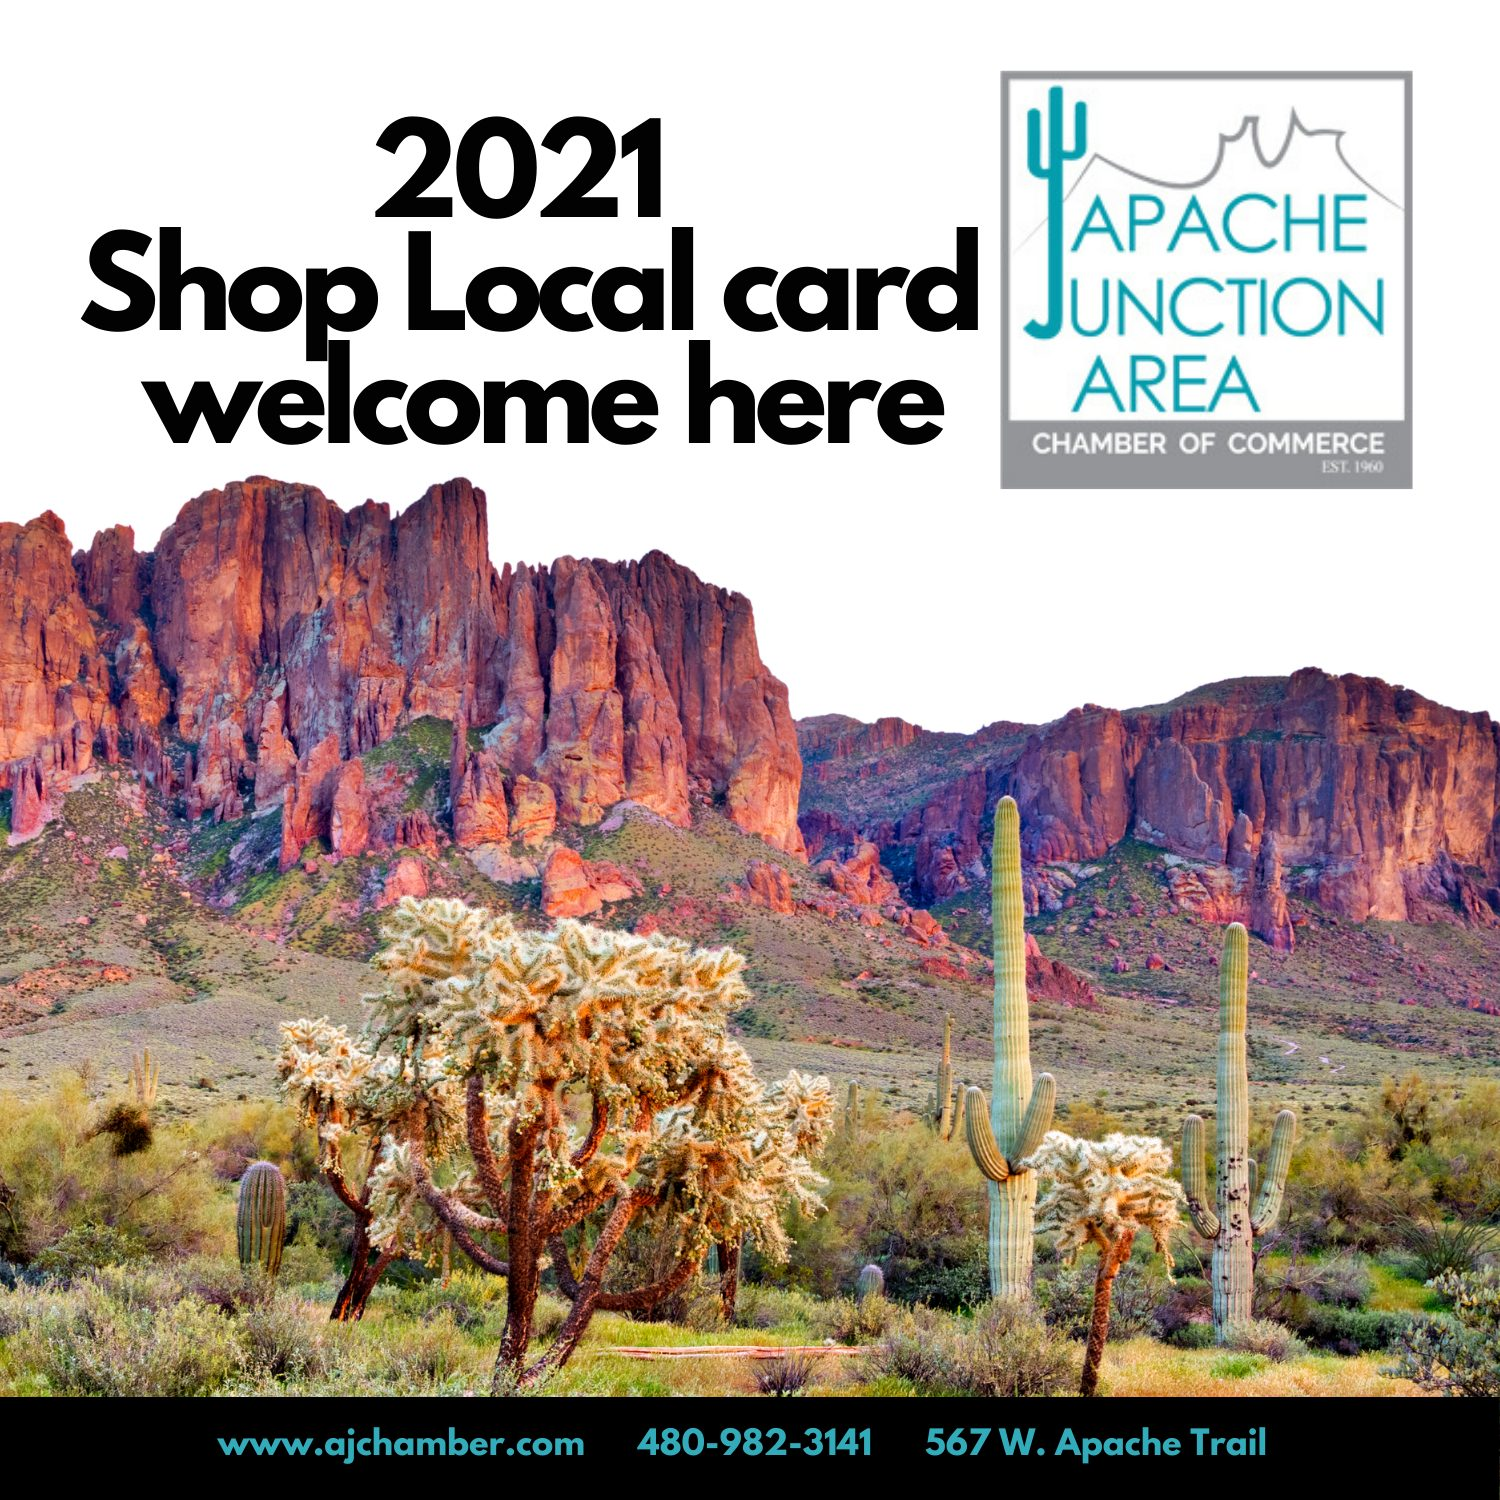 Shop Local Cling 2021